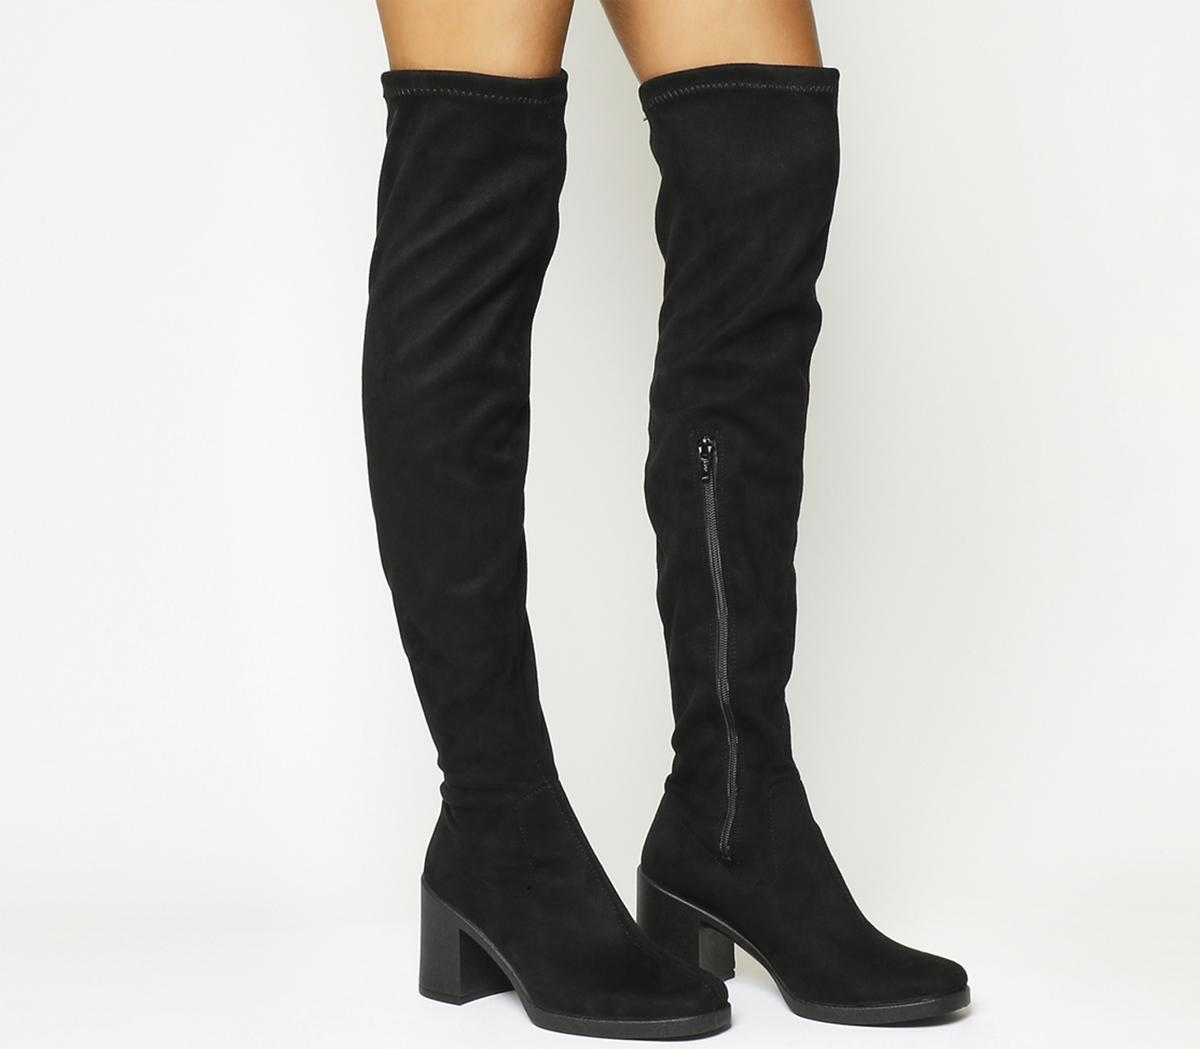 Kickback Over The Knee Boots